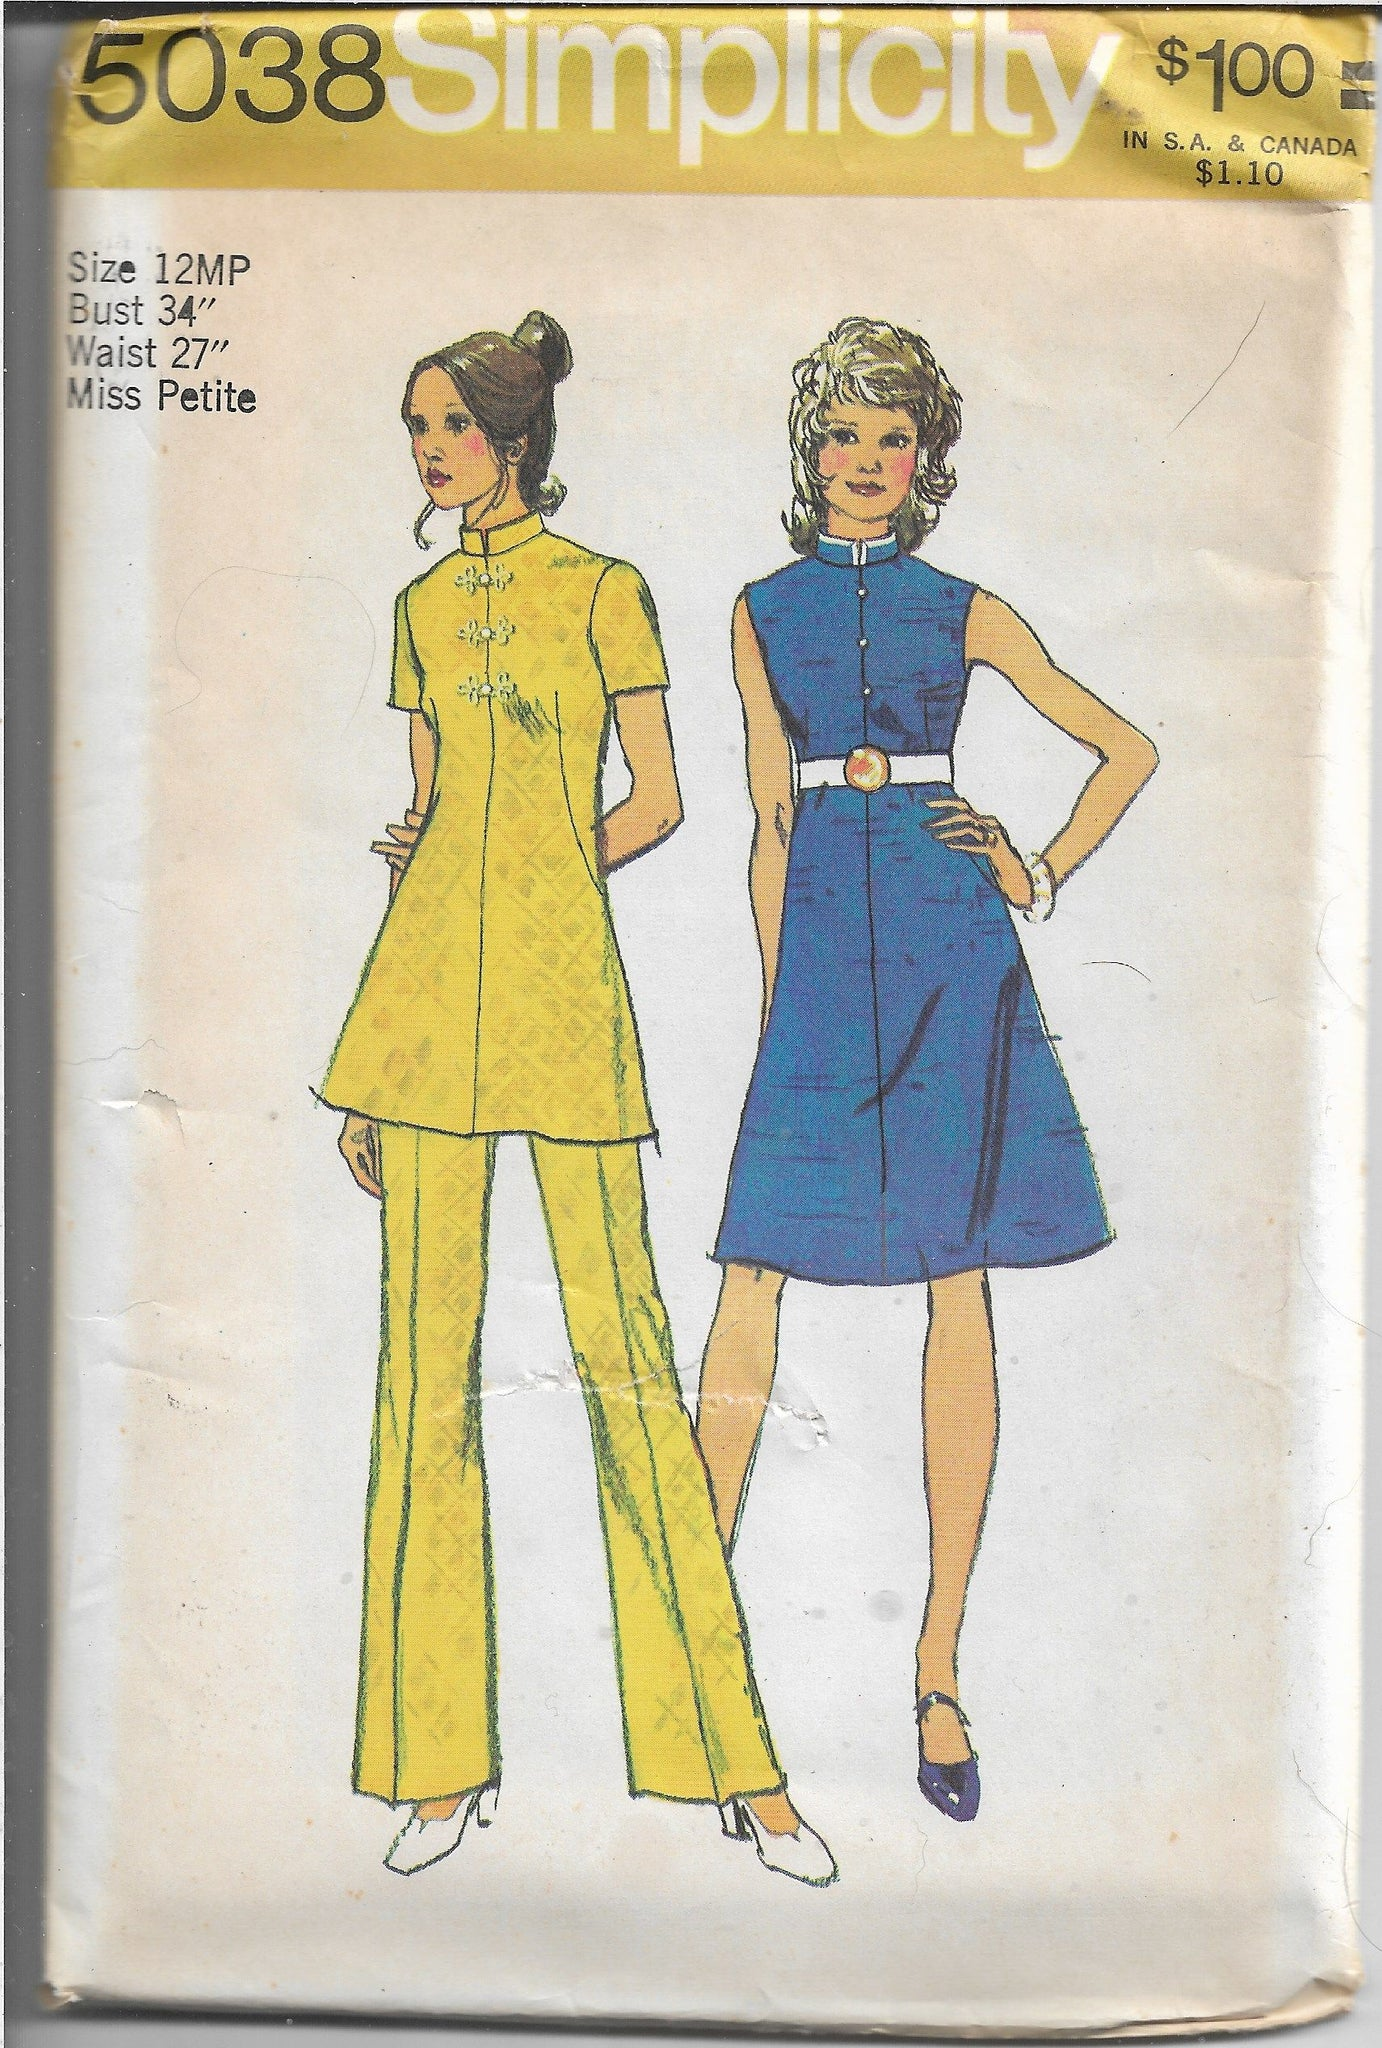 Simplicity 5038 Petite Dress Tunic Pants Vintage Sewing Pattern 1970s - VintageStitching - Vintage Sewing Patterns